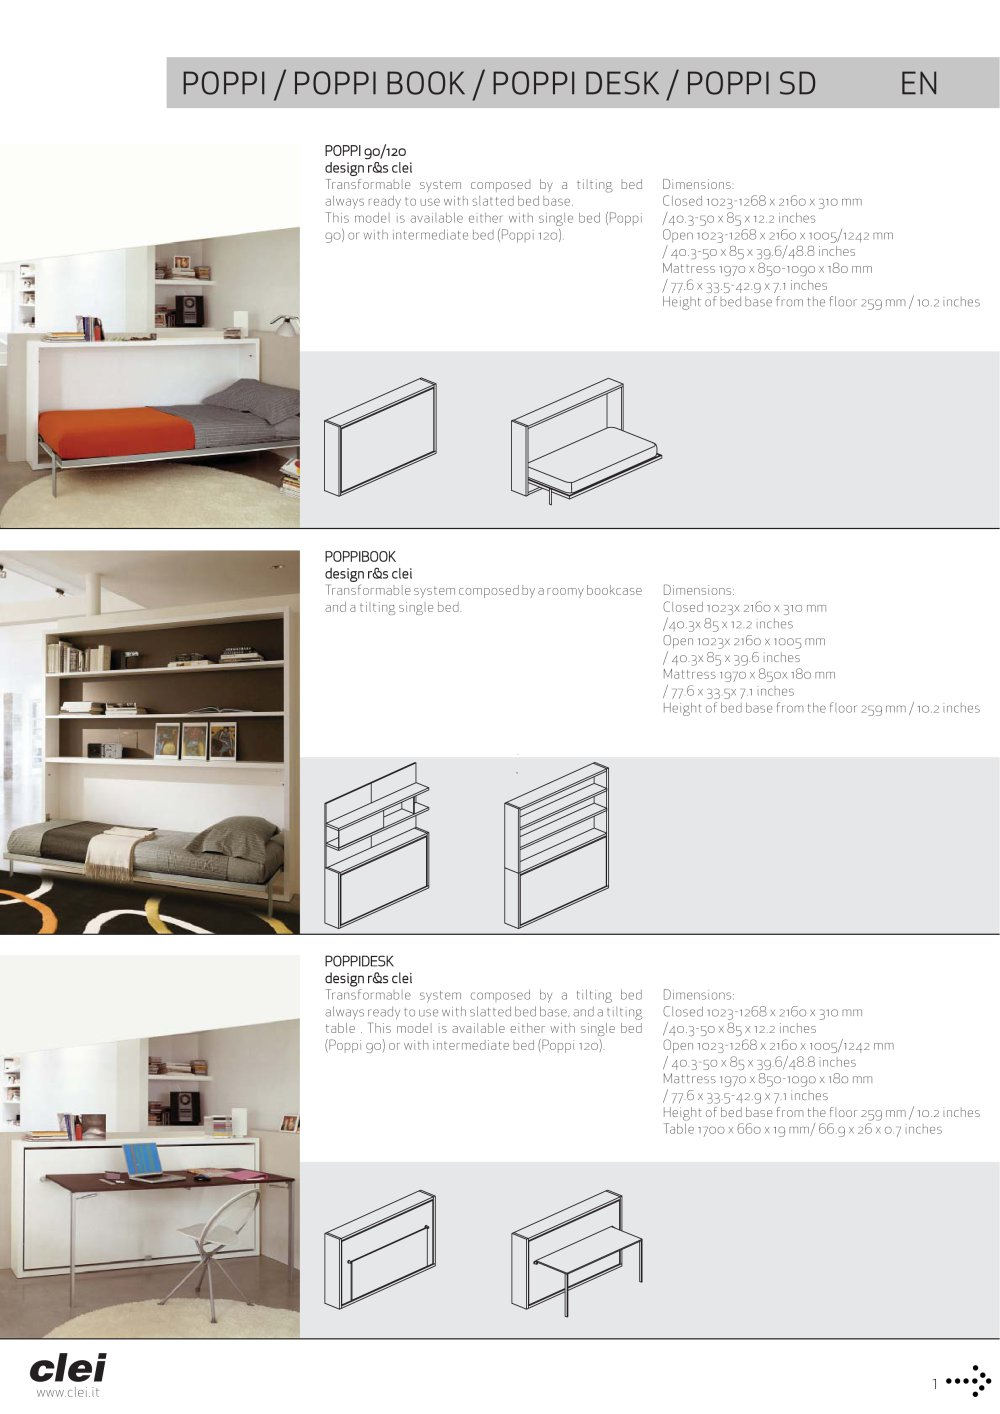 Single bed dimensions in mm - Poppi Poppi Book Poppi Desk Poppi Sd 1 2 Pages